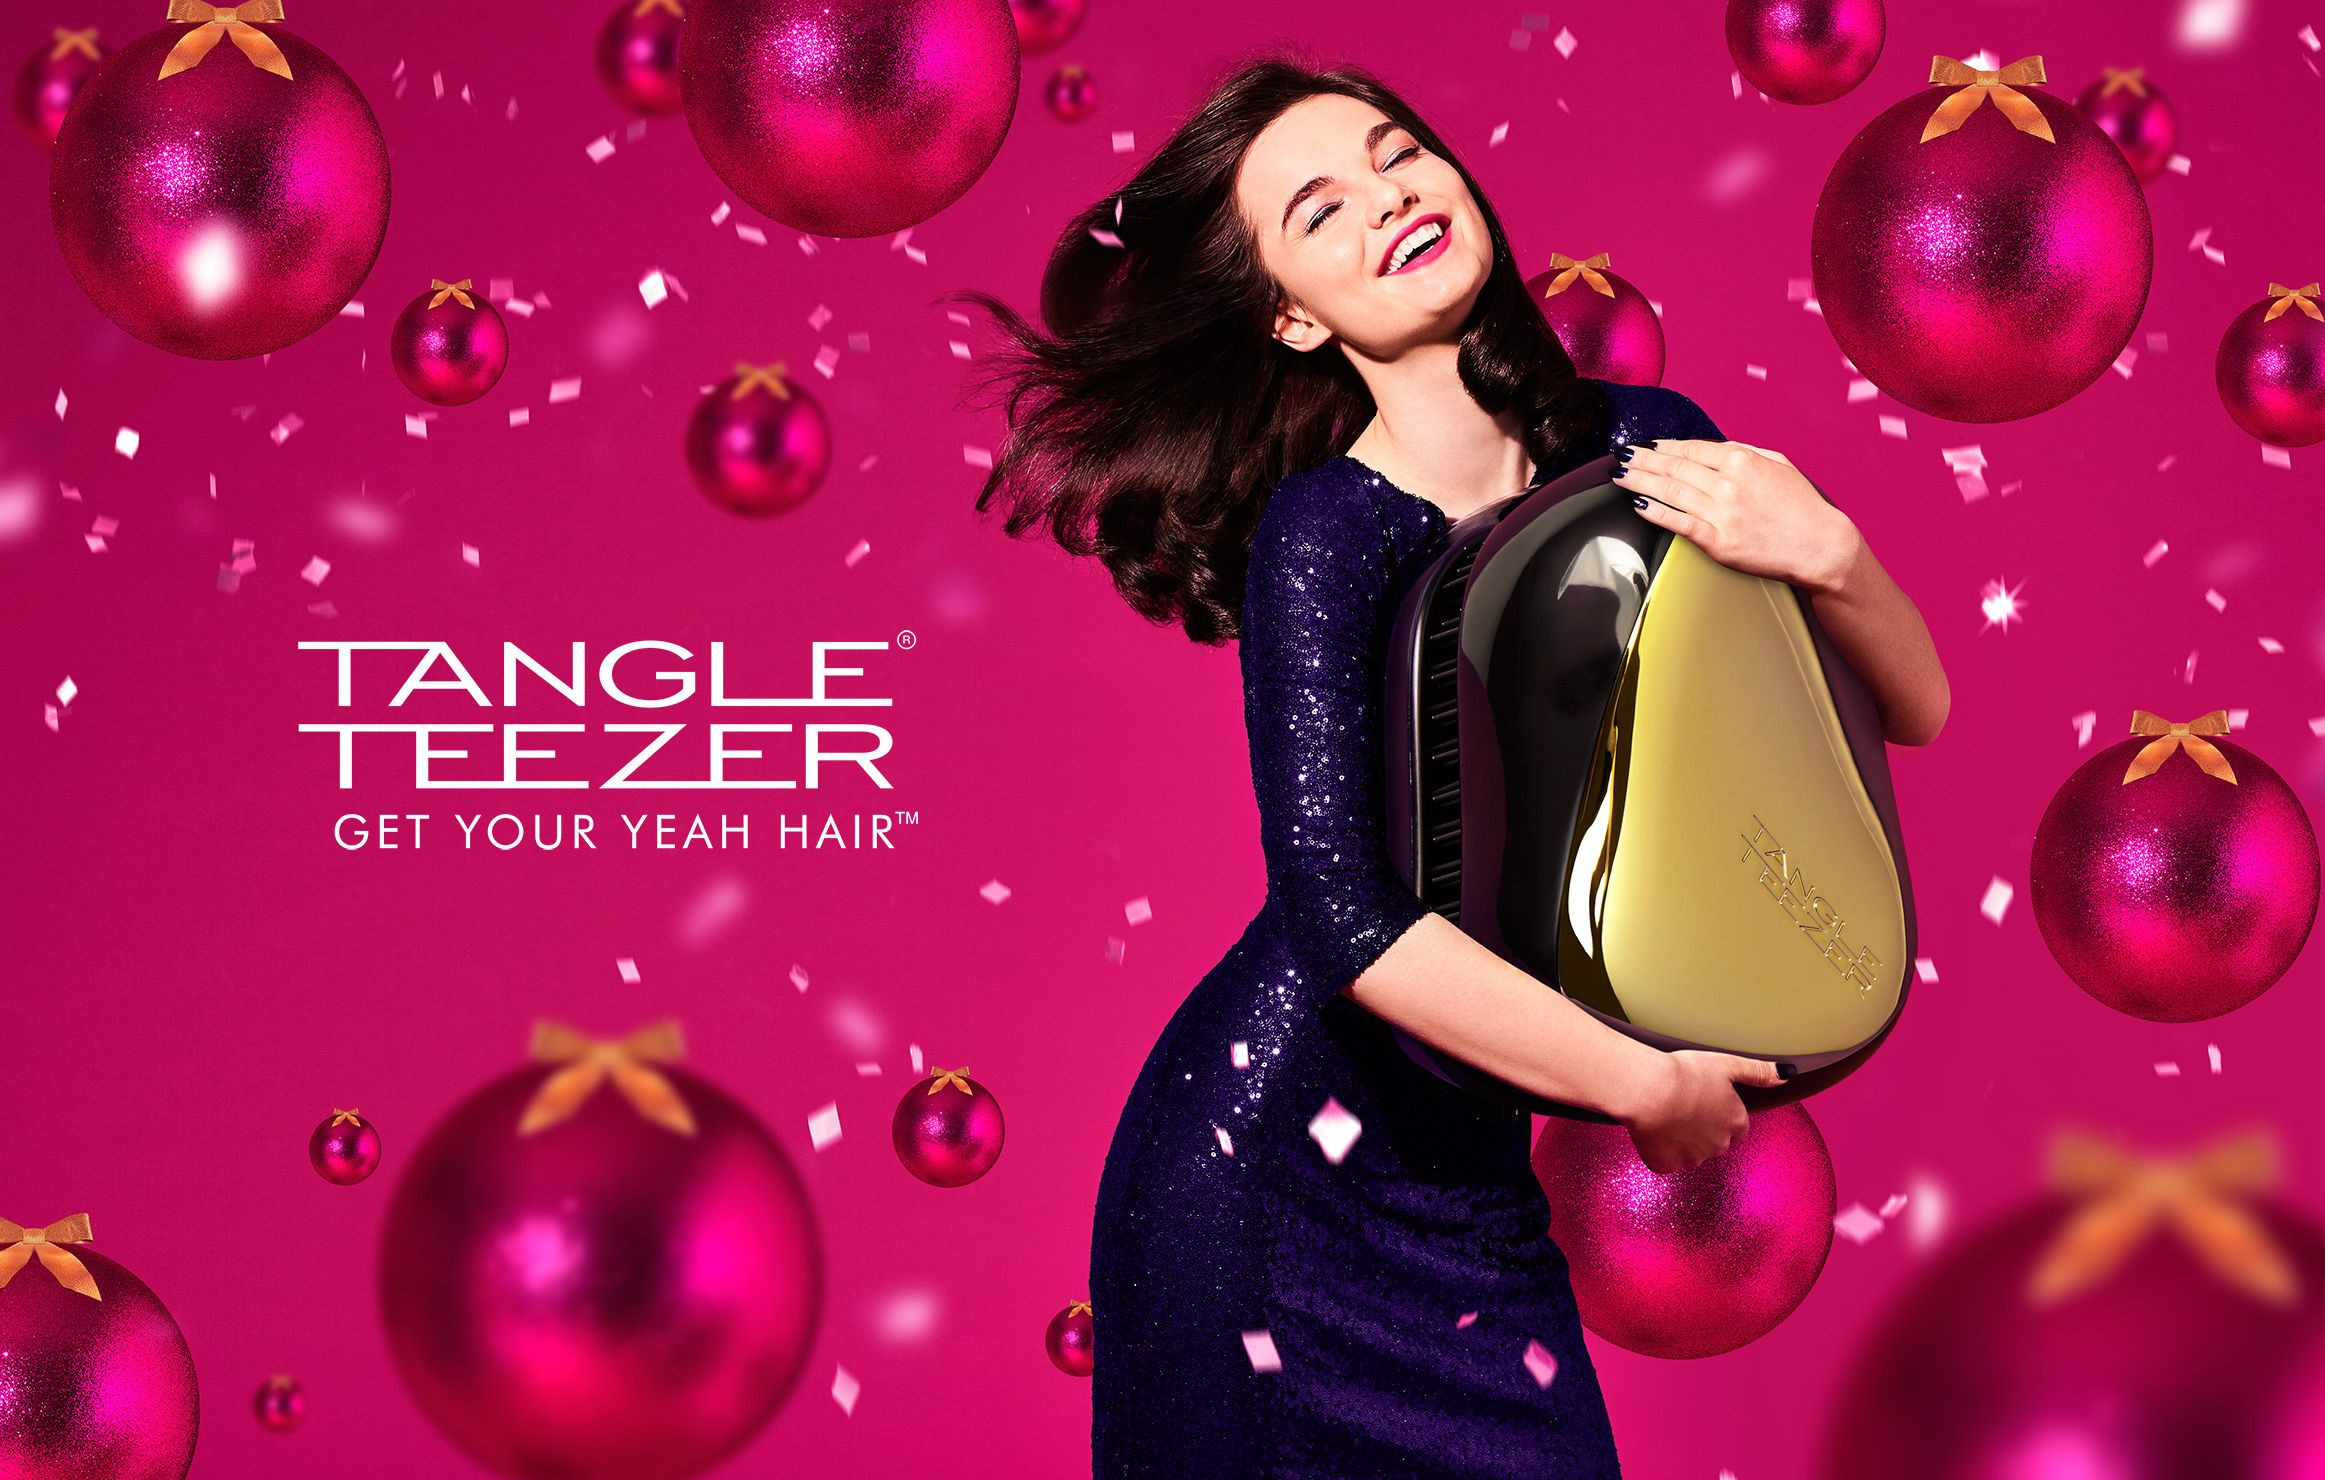 160407_TANGLE_TEEZER0851b-f2-compressor.jpg